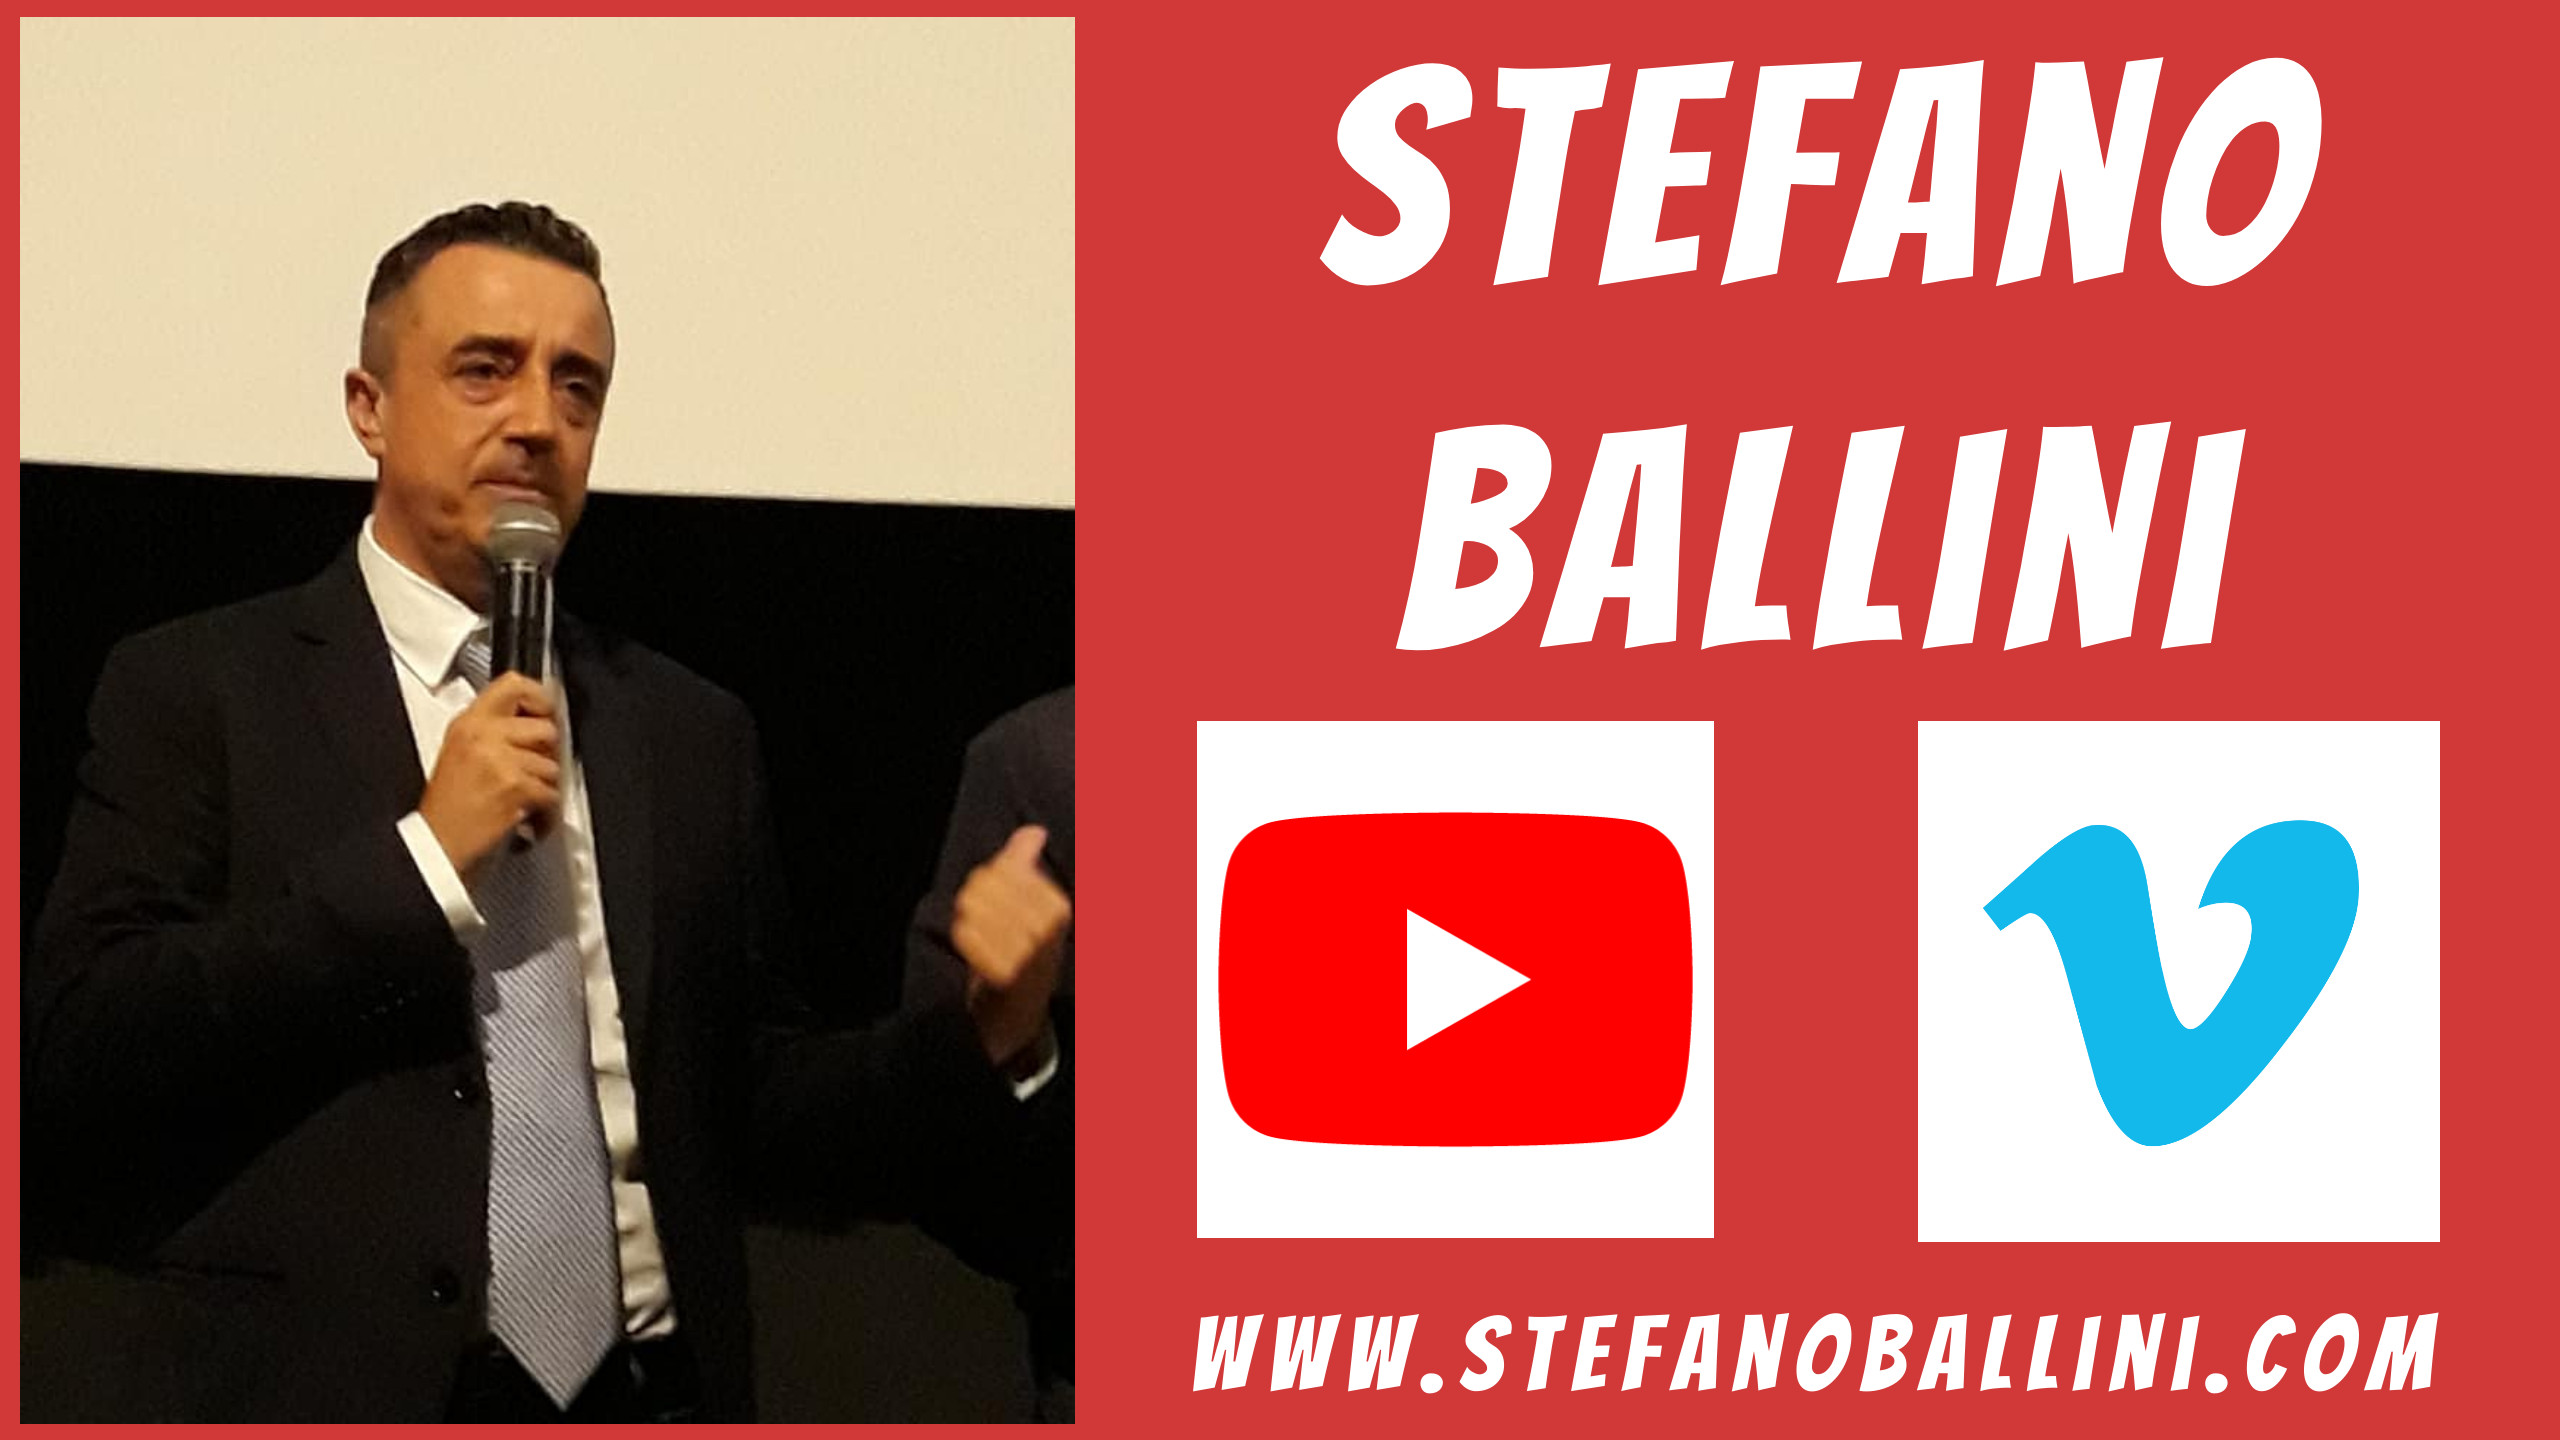 Stefano Ballini Official Site